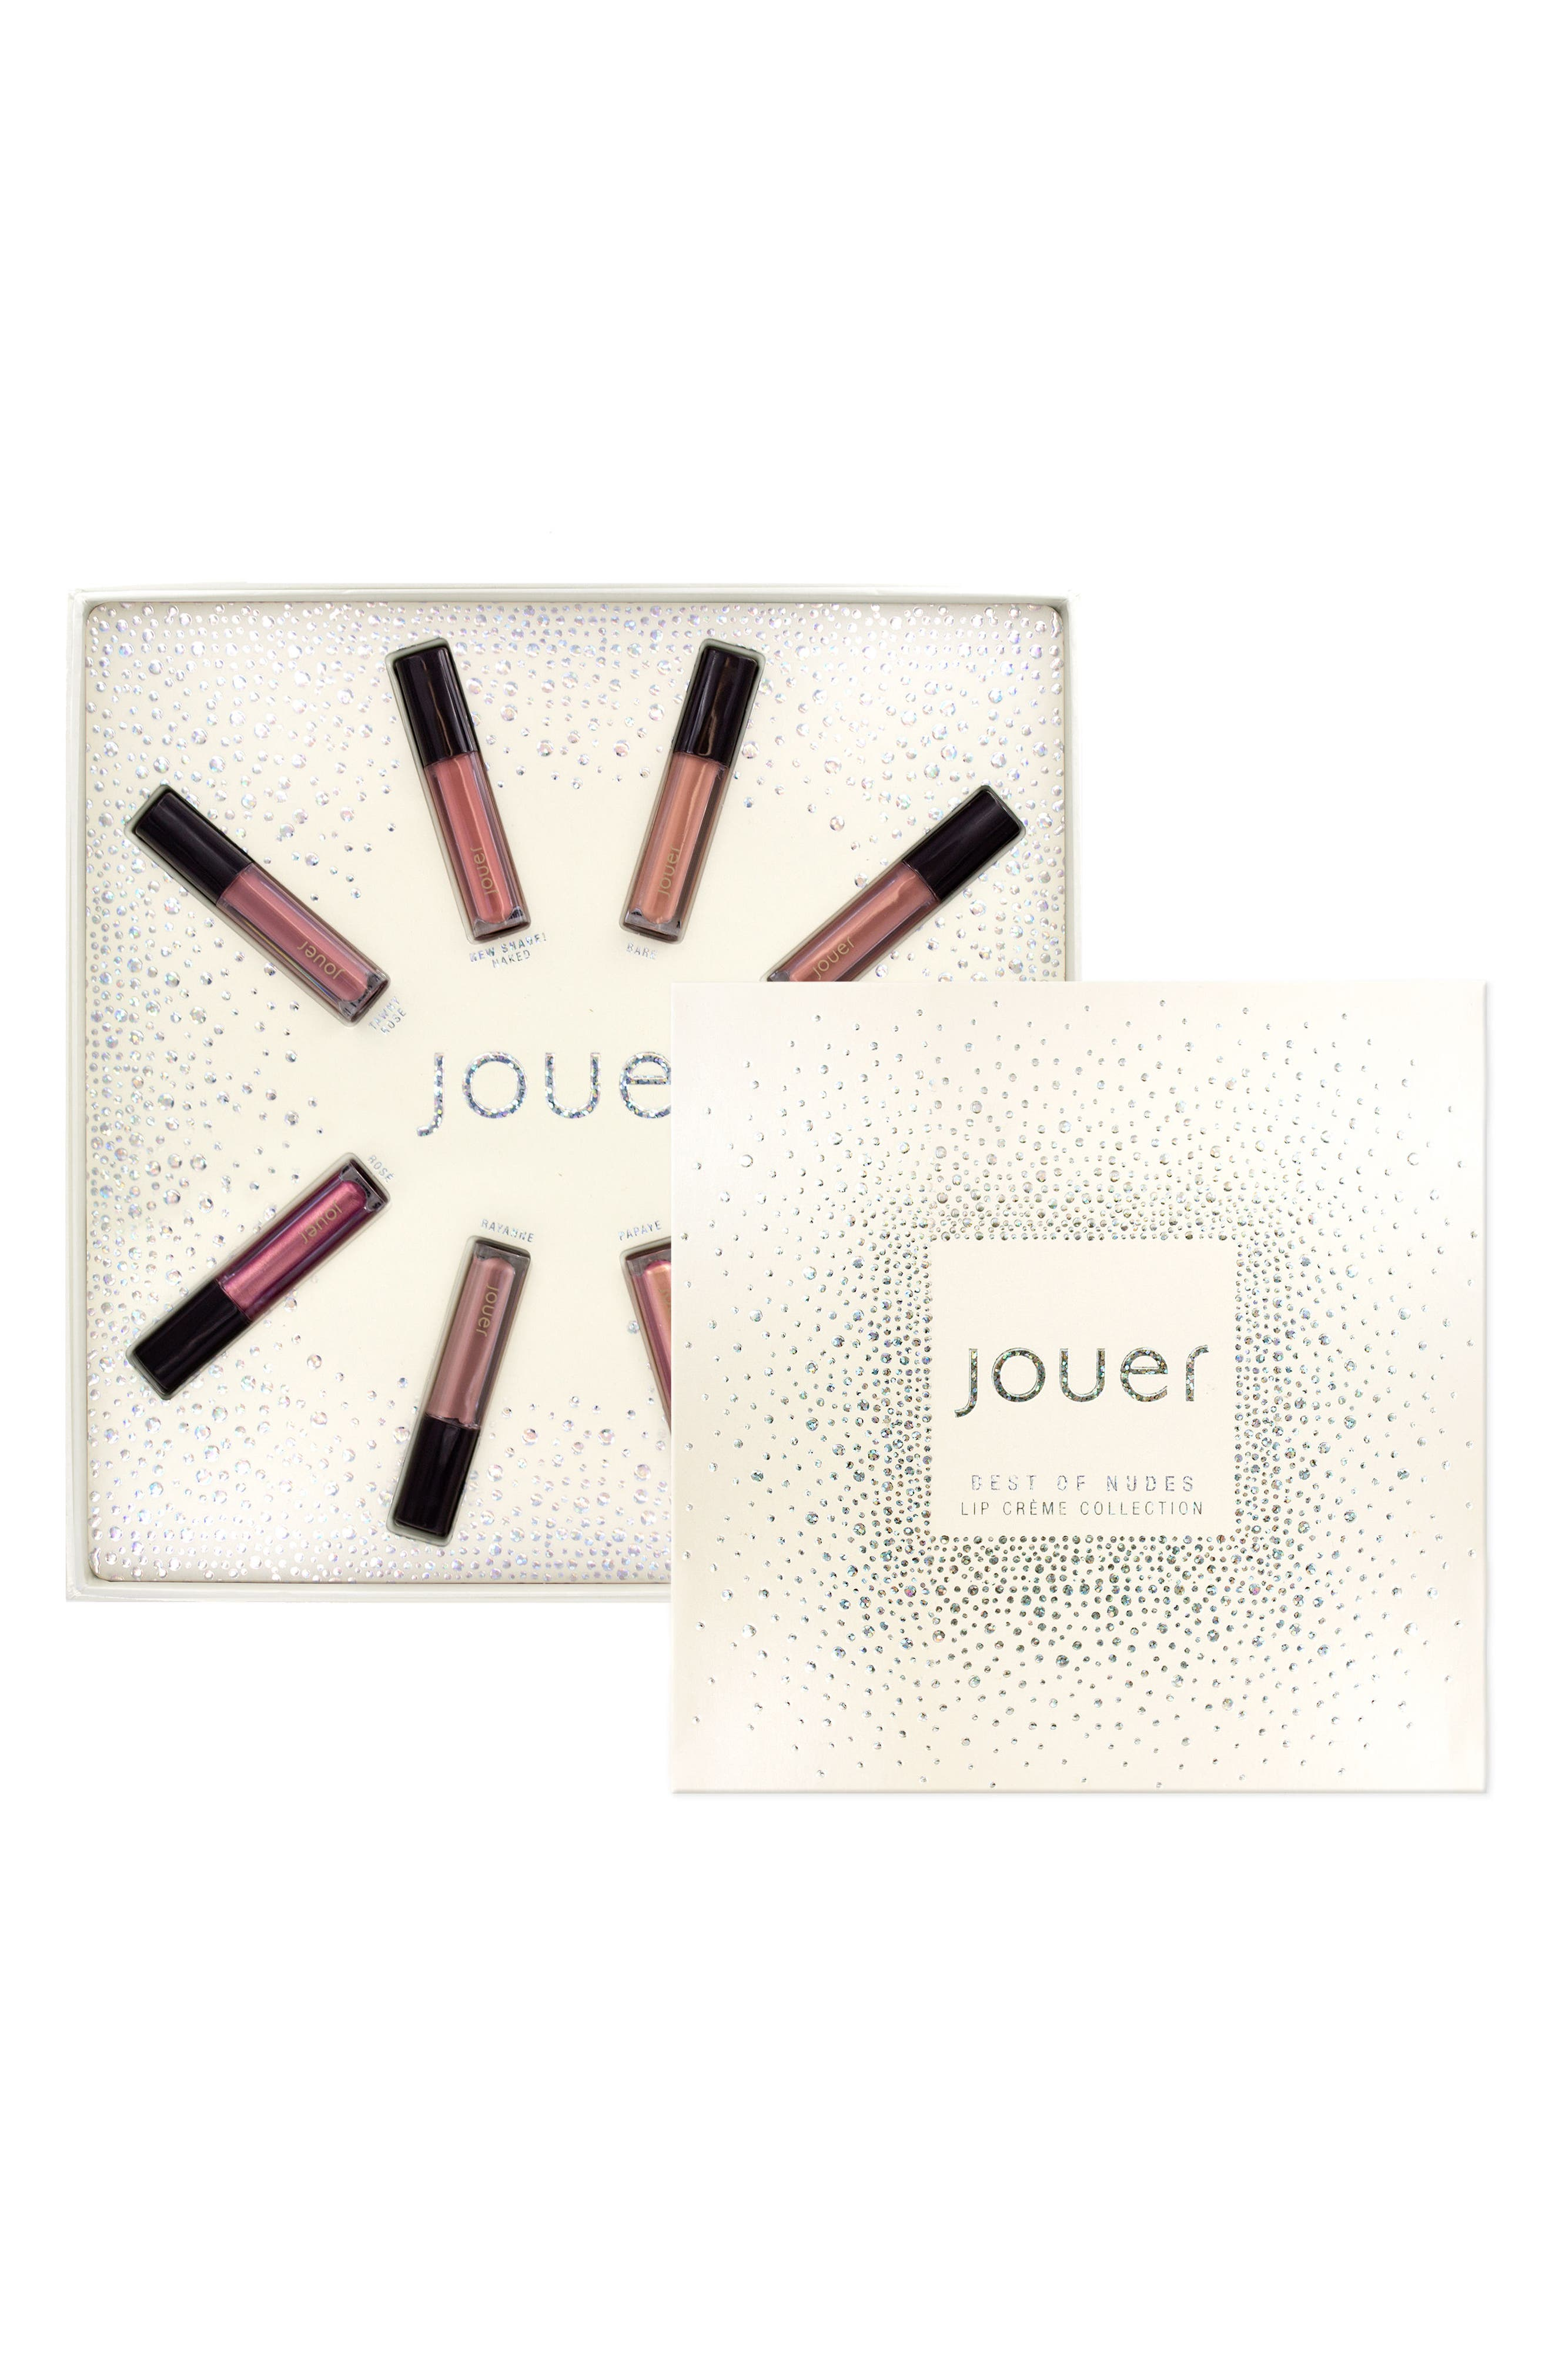 Jouer Best of Nudes Mini Long-Wear Lip Crème Liquid Lipstick Collection ($50 Value)